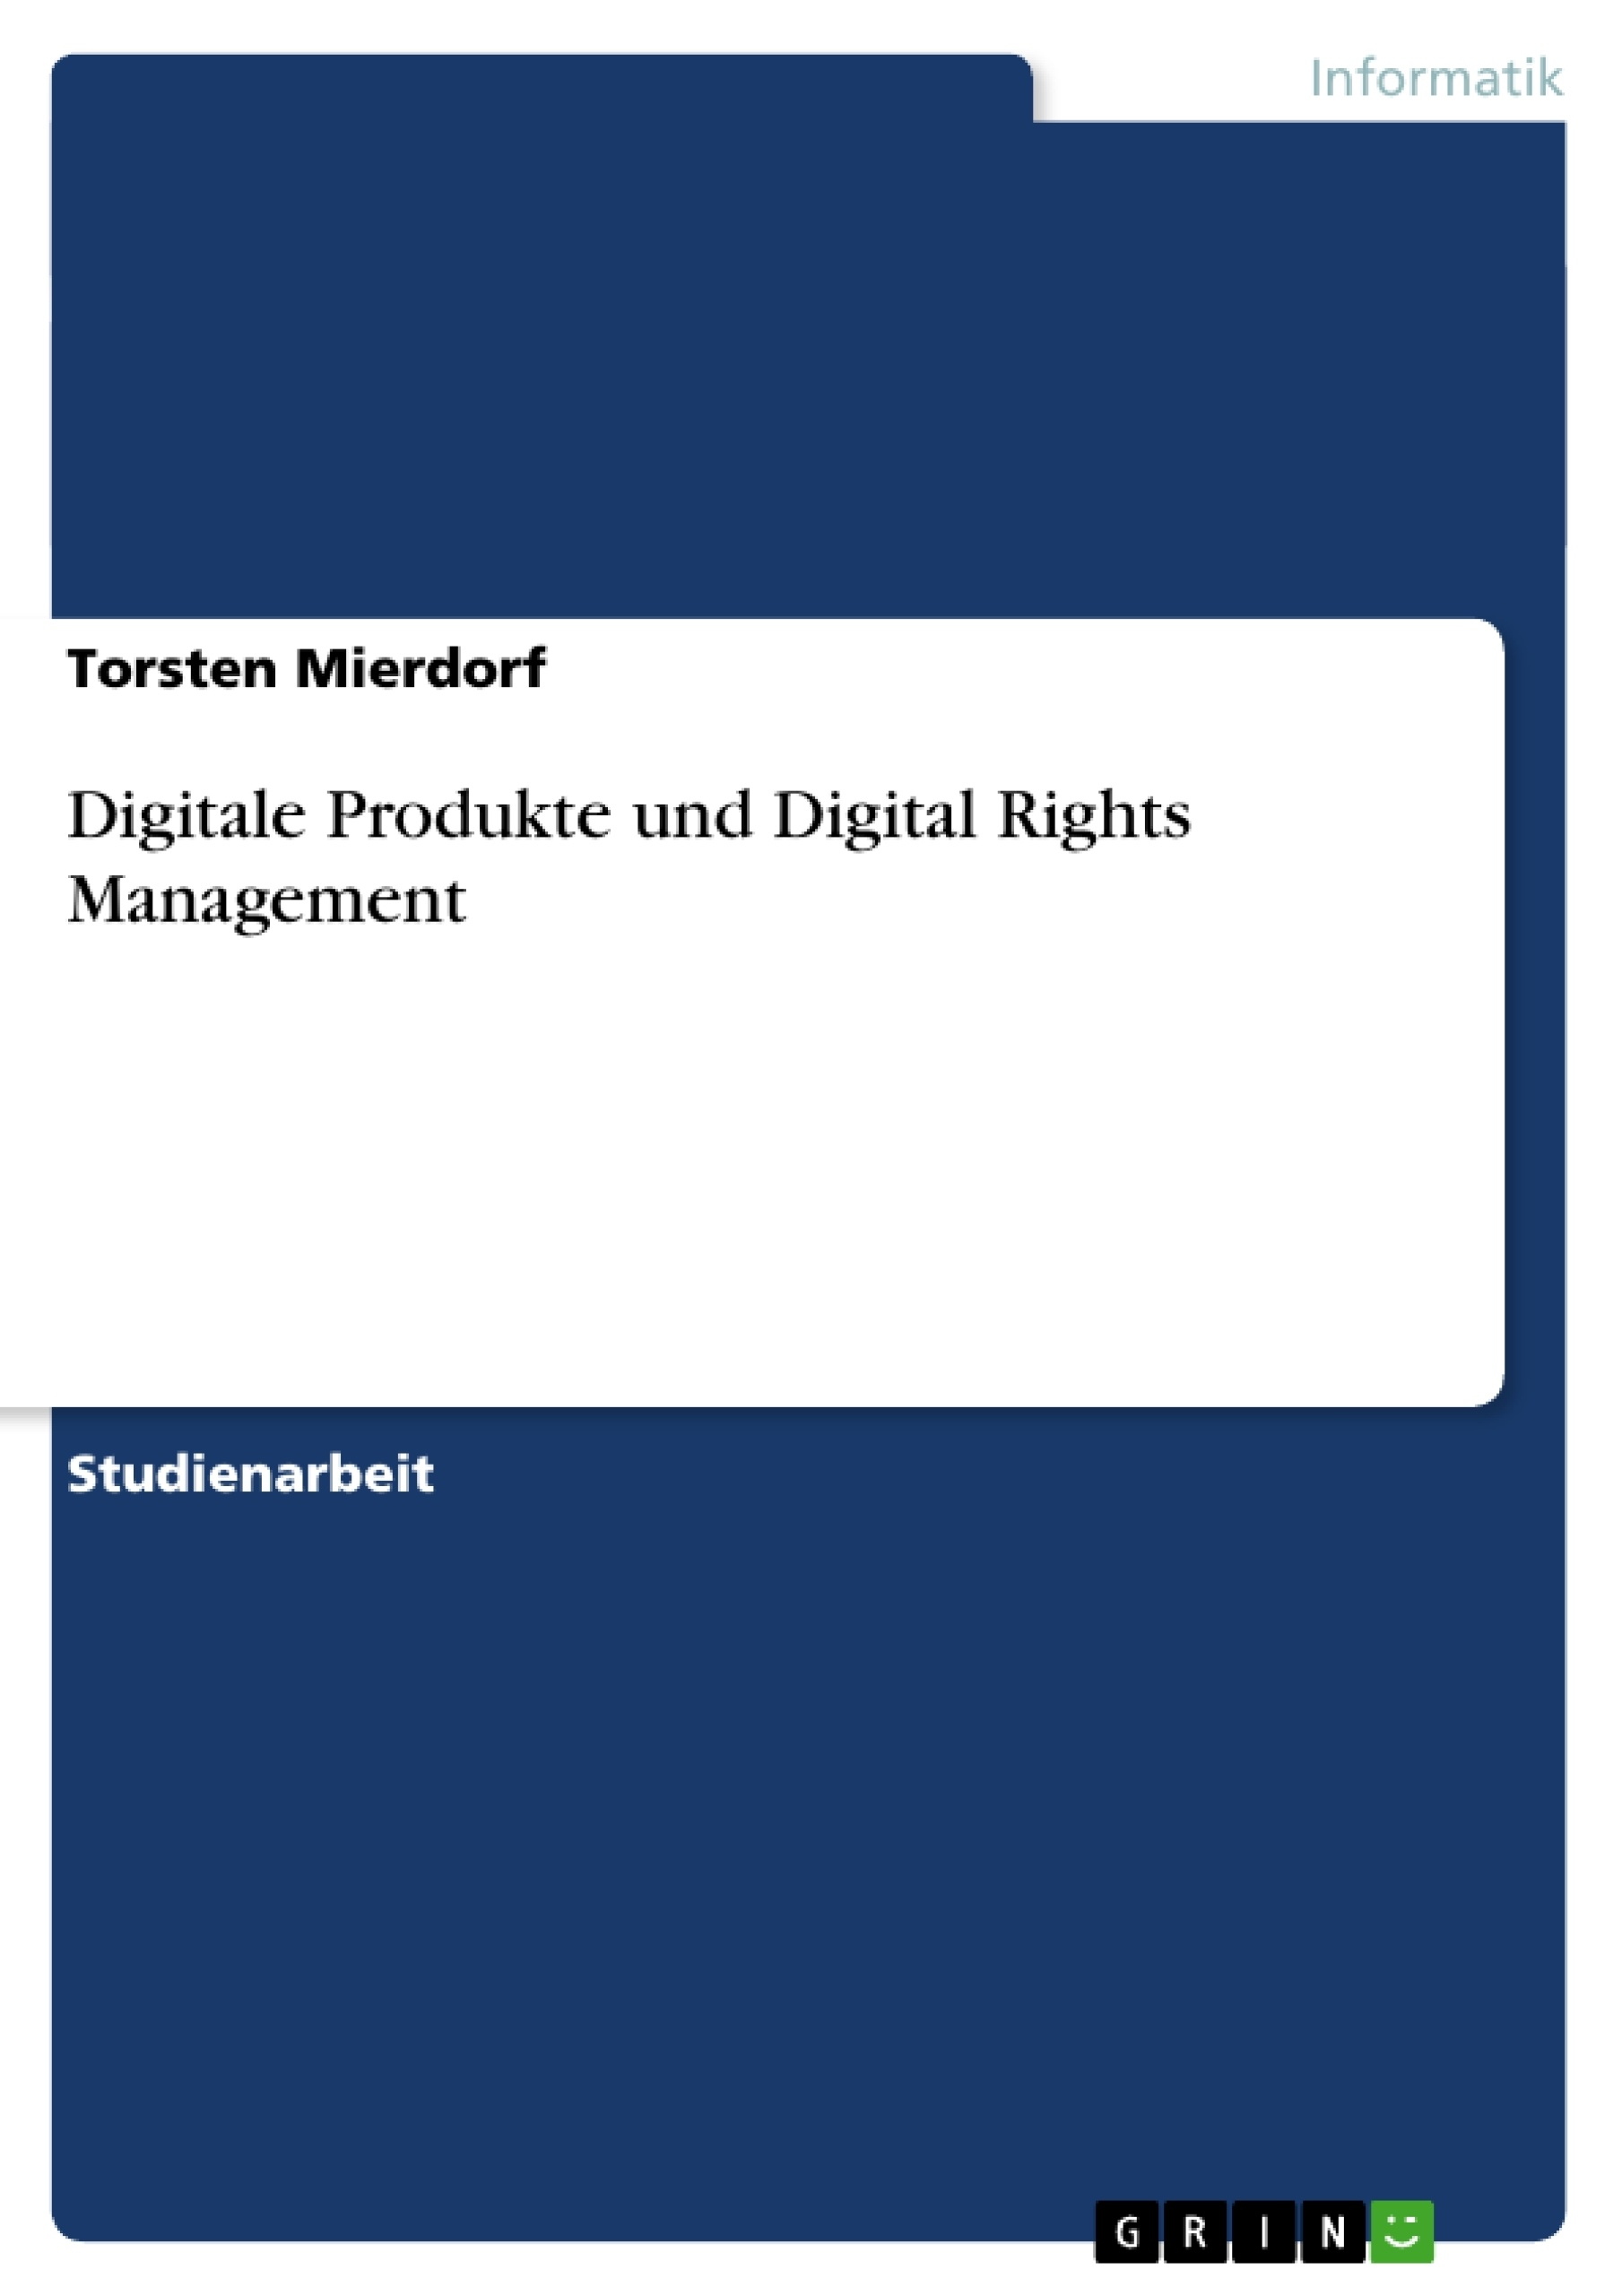 Titel: Digitale Produkte und Digital Rights Management